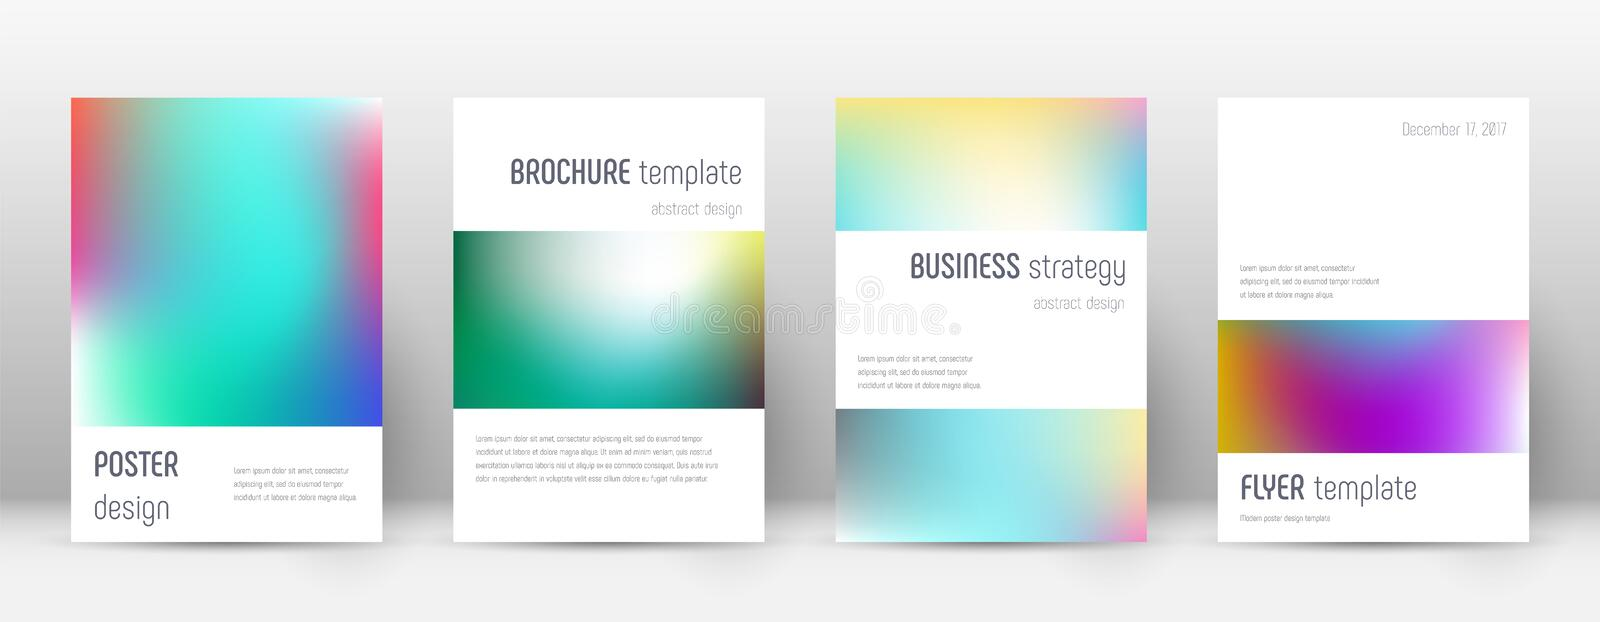 Flyer layout. Minimalistic beauteous template for Brochure, Annual Report, Magazine, Poster, Corporate Presentation, Portfolio, Flyer. Artistic bright cover stock illustration